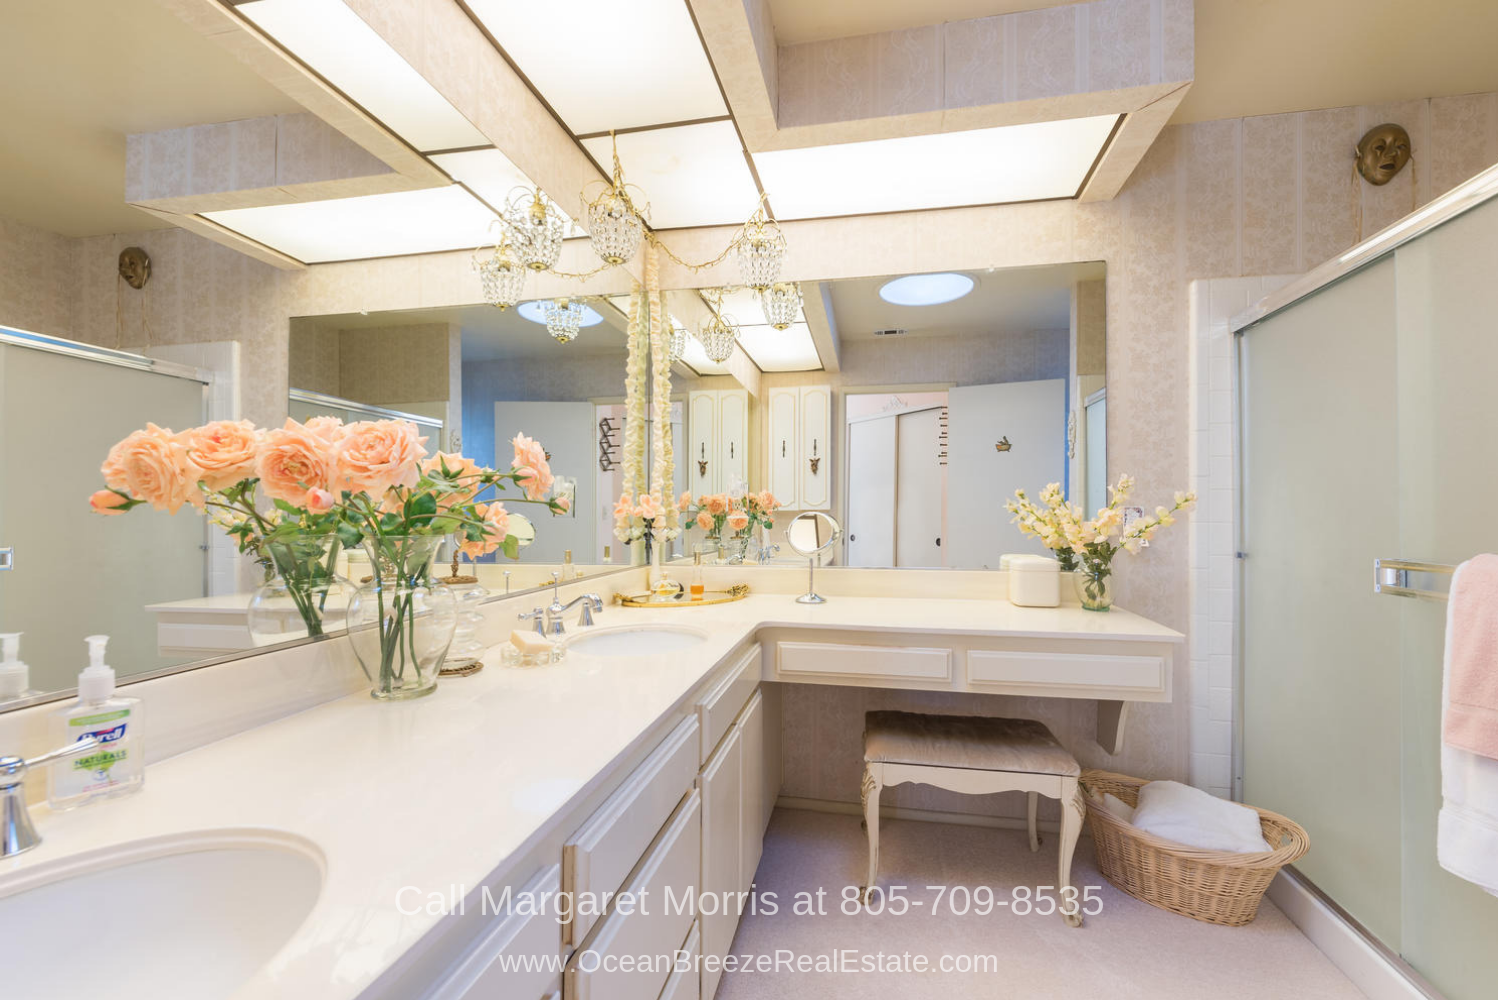 Golf Homes for Sale in Nipomo CA - Enjoy the best home pampering in the large master bathroom of this golf home for sale in Nipomo CA.